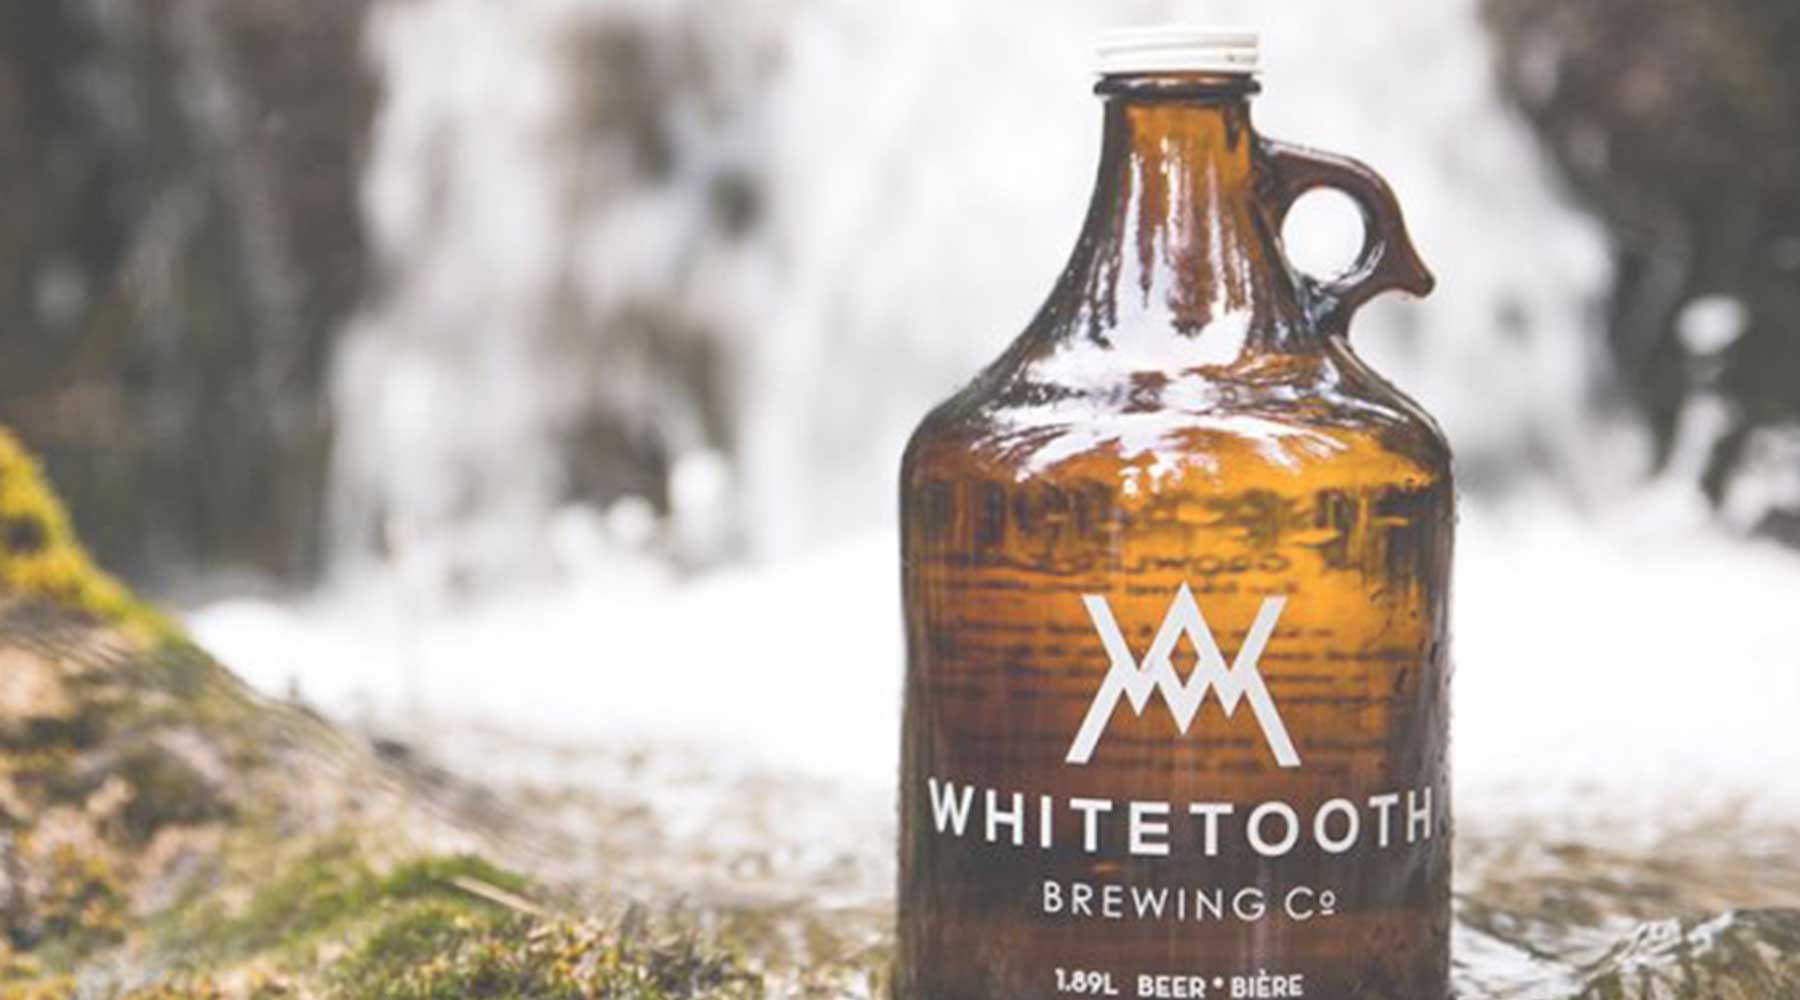 Whitetooth Brewing Co. | Just Wine